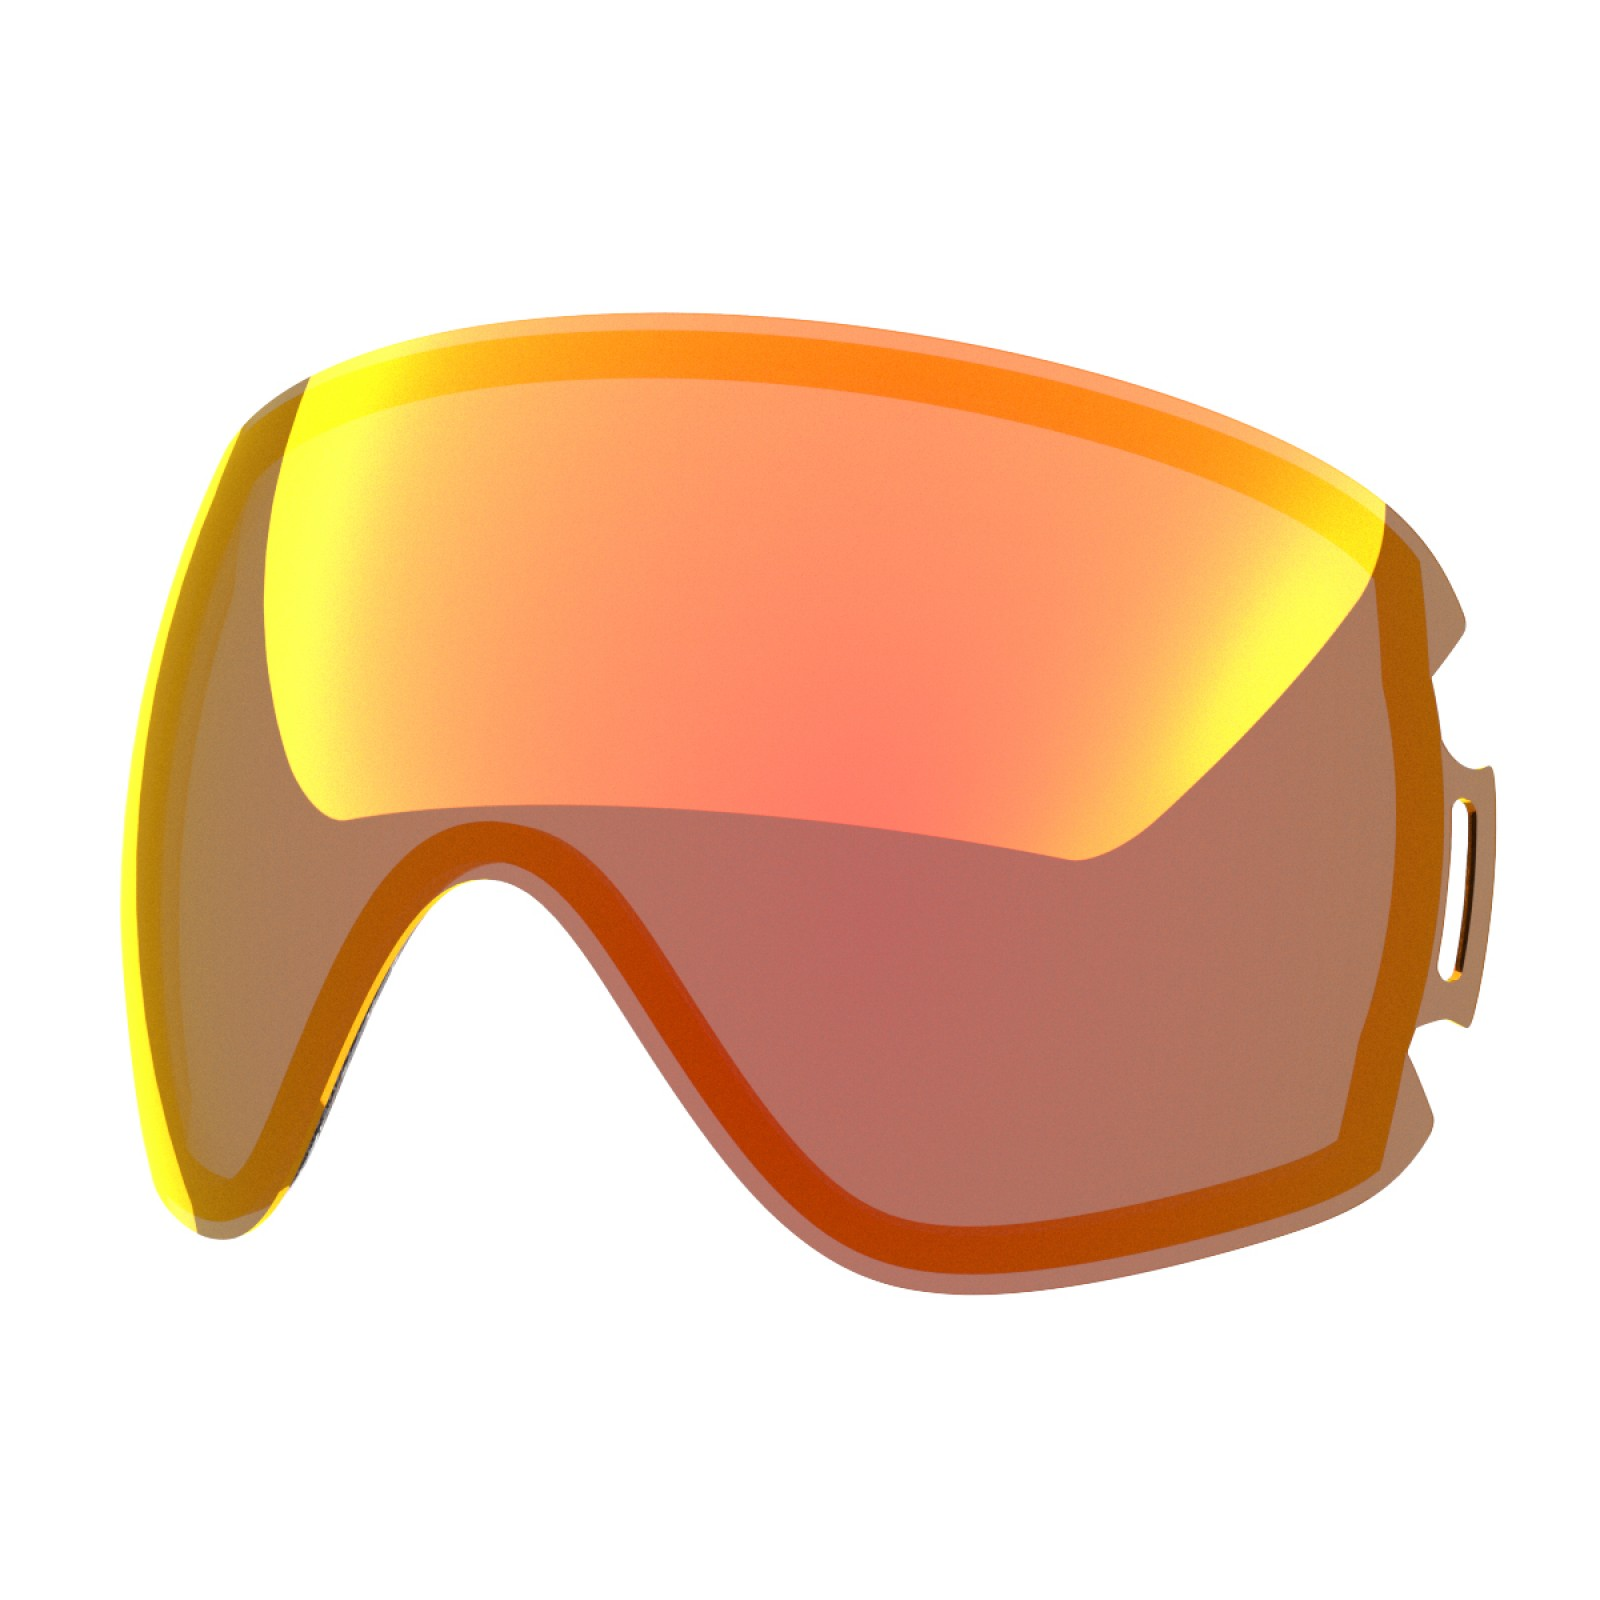 RED MCI lens for  Open goggle